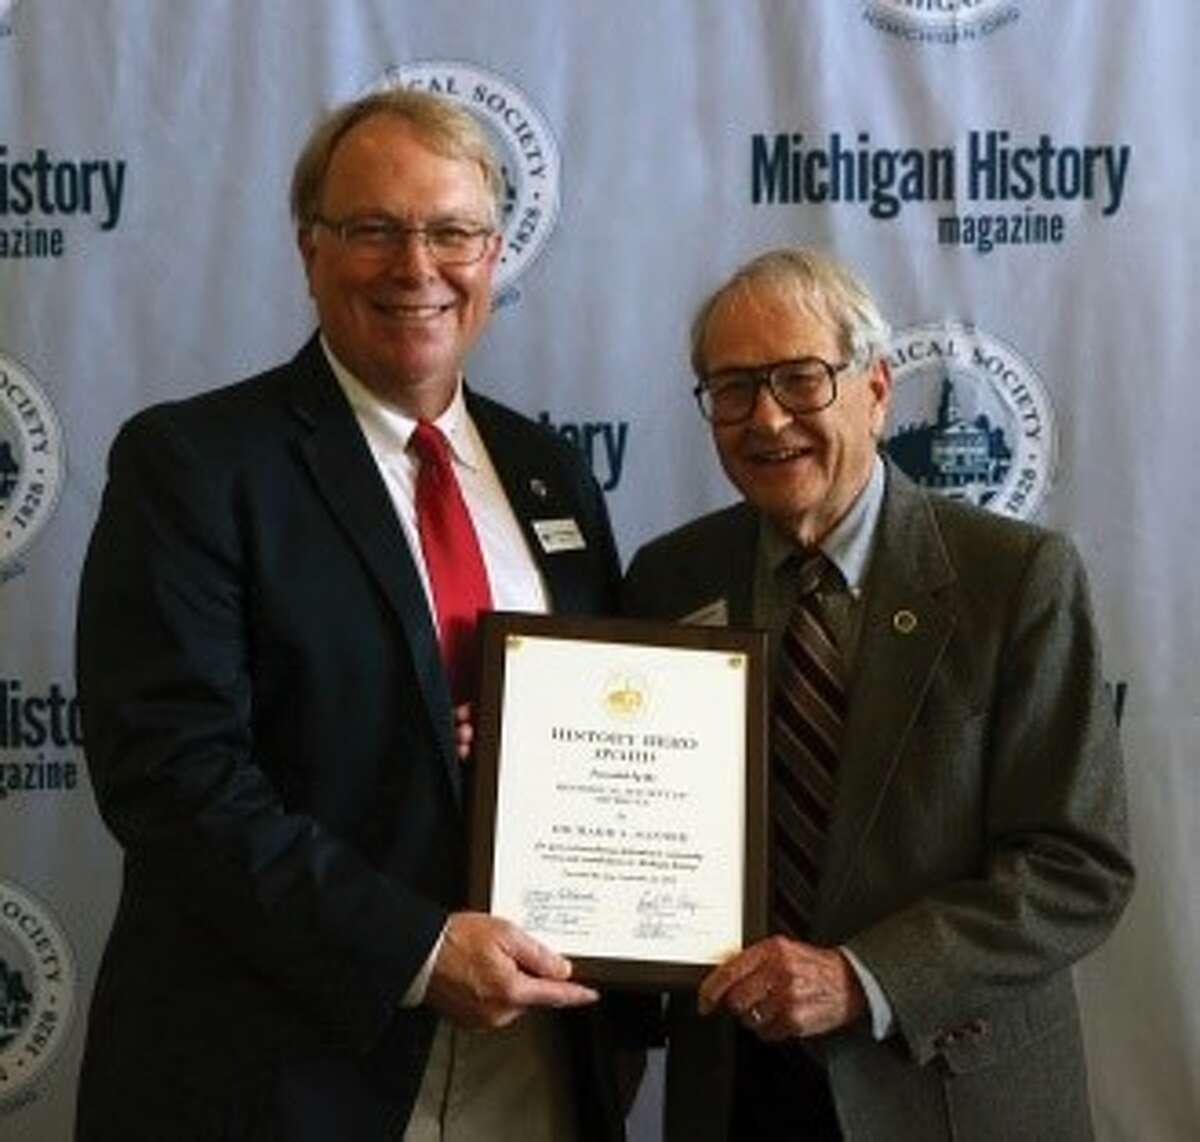 Ferris State University geology professor emeritus Richard Santer (right) received the History Hero Award from the Historical Society of Michigan during its annual meeting and conference in Sturgis. Pictured with Santer is Kendall Wingrove, a member of the Historical Society of Michigan board and awards committee chair. (Courtesy photo)